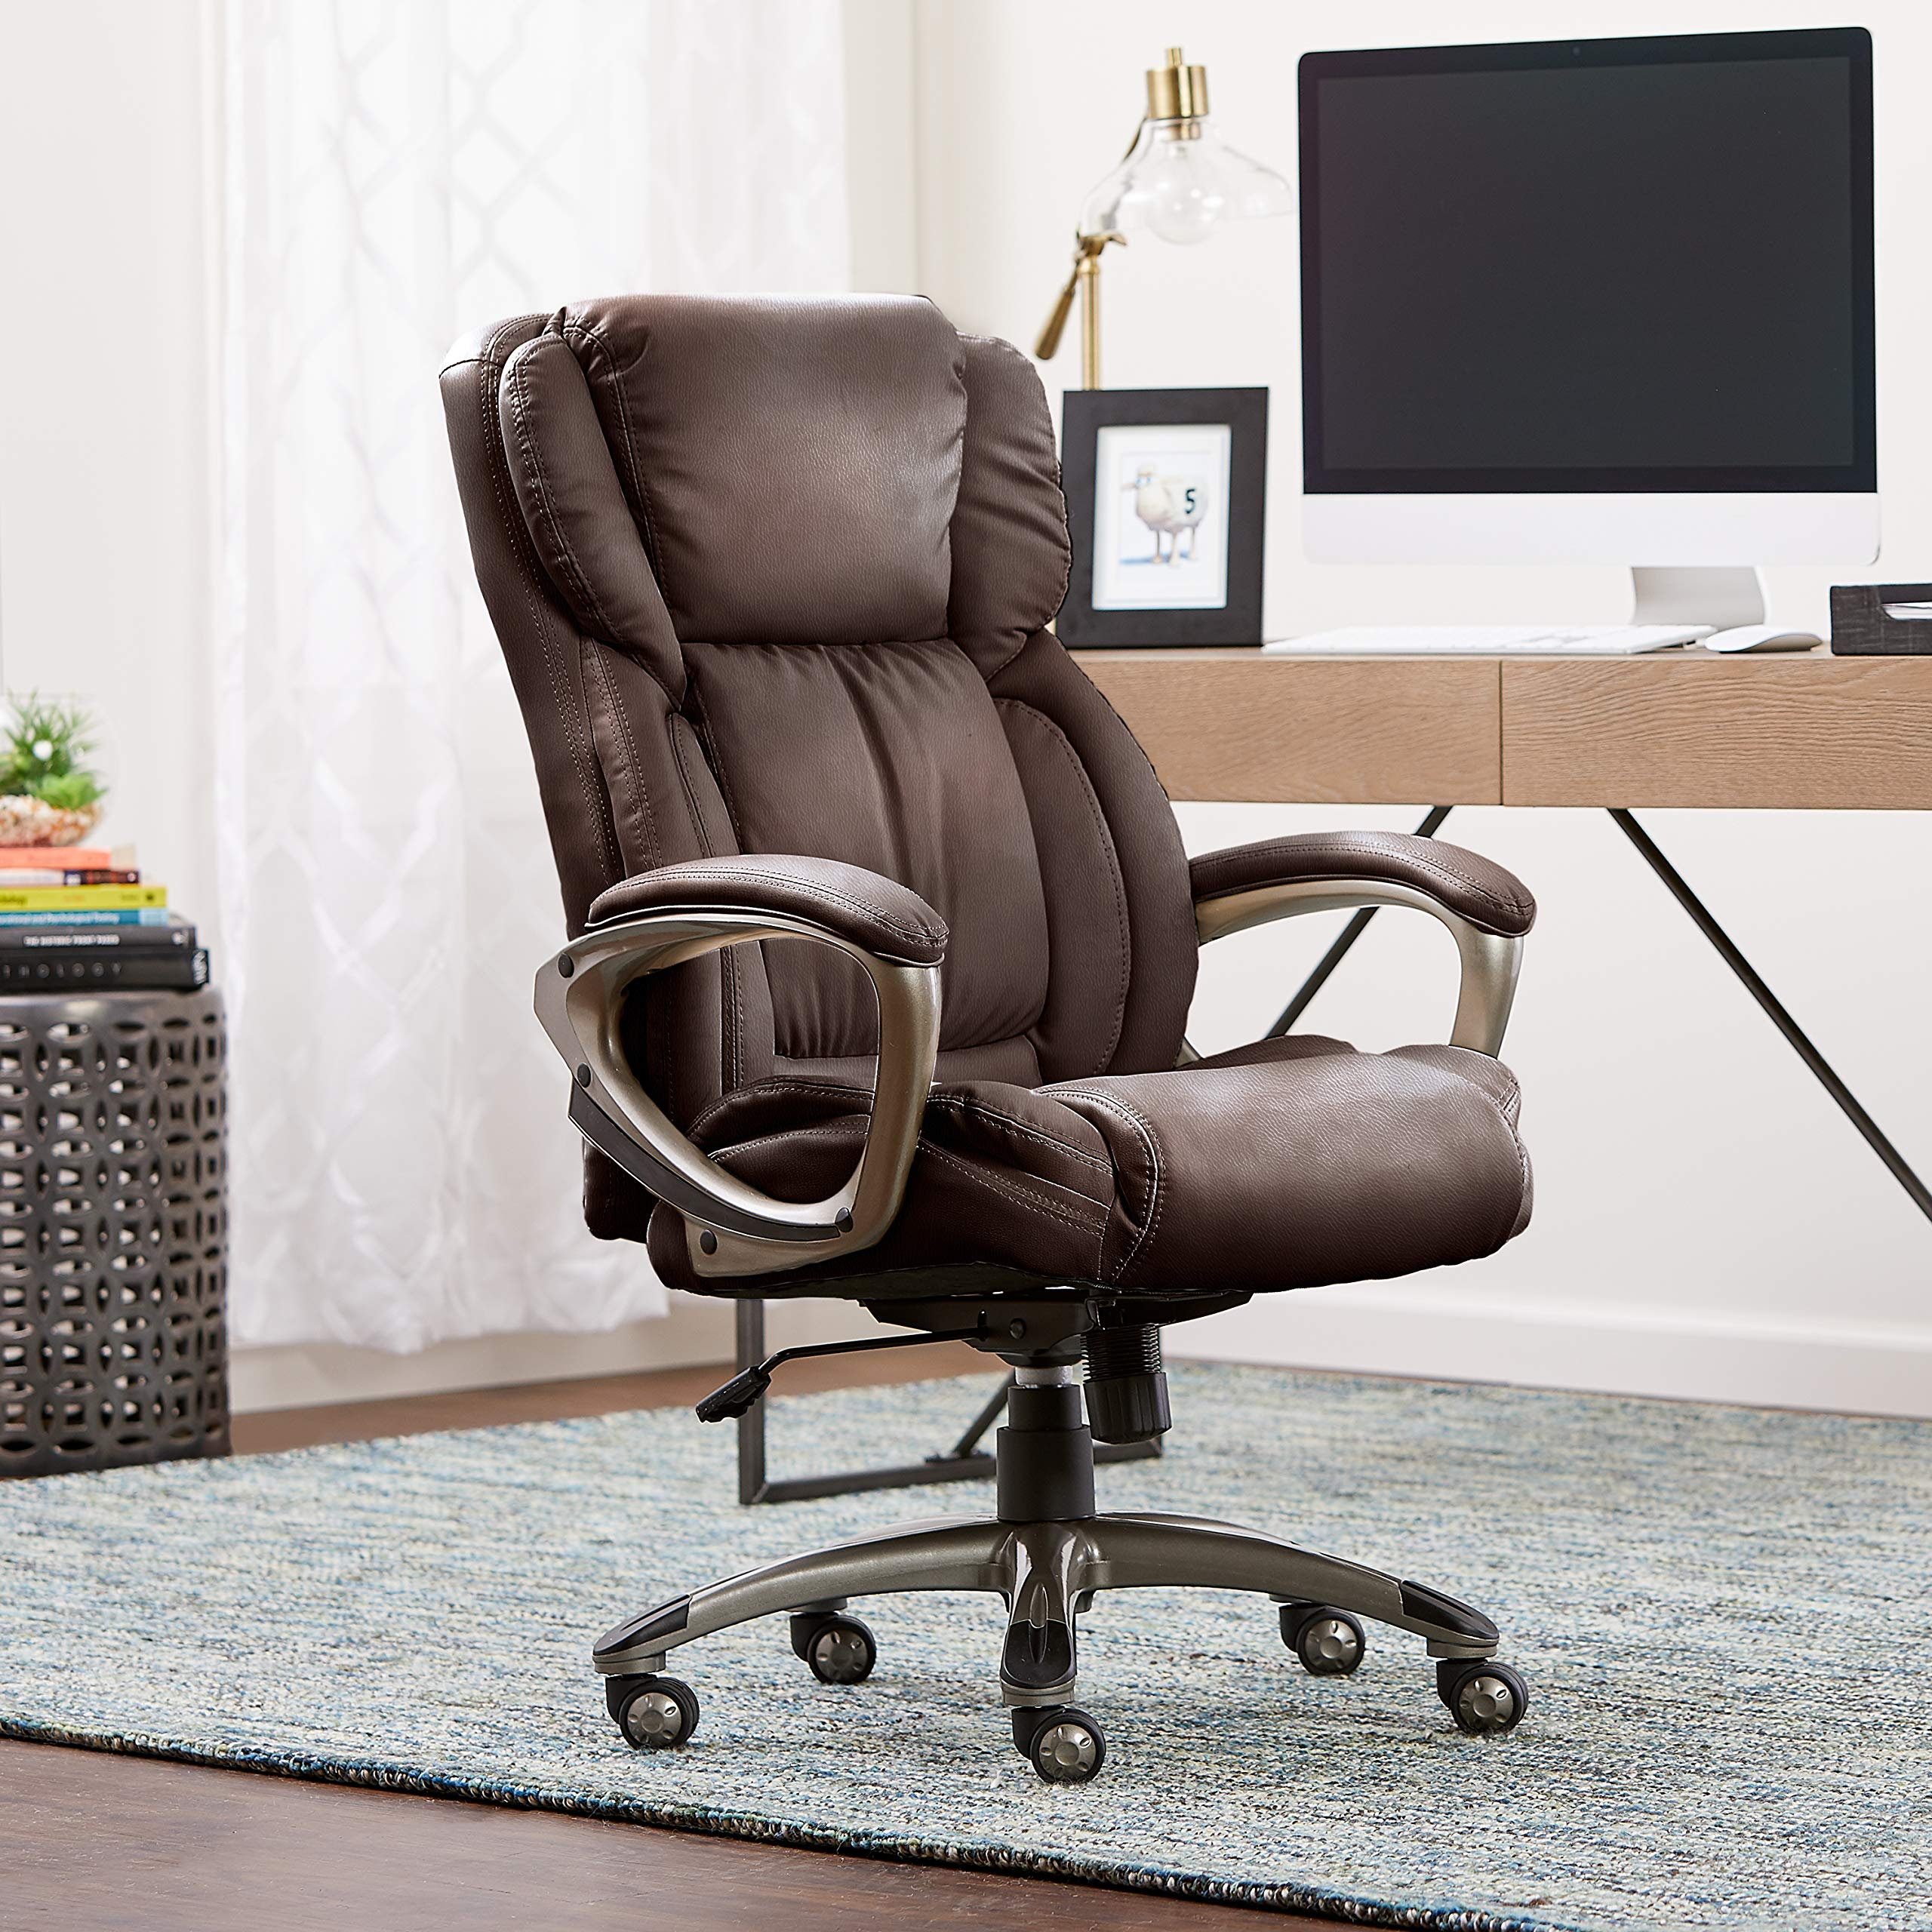 Serta Works Executive Office Chair, Bonded Leather, Brown by Serta